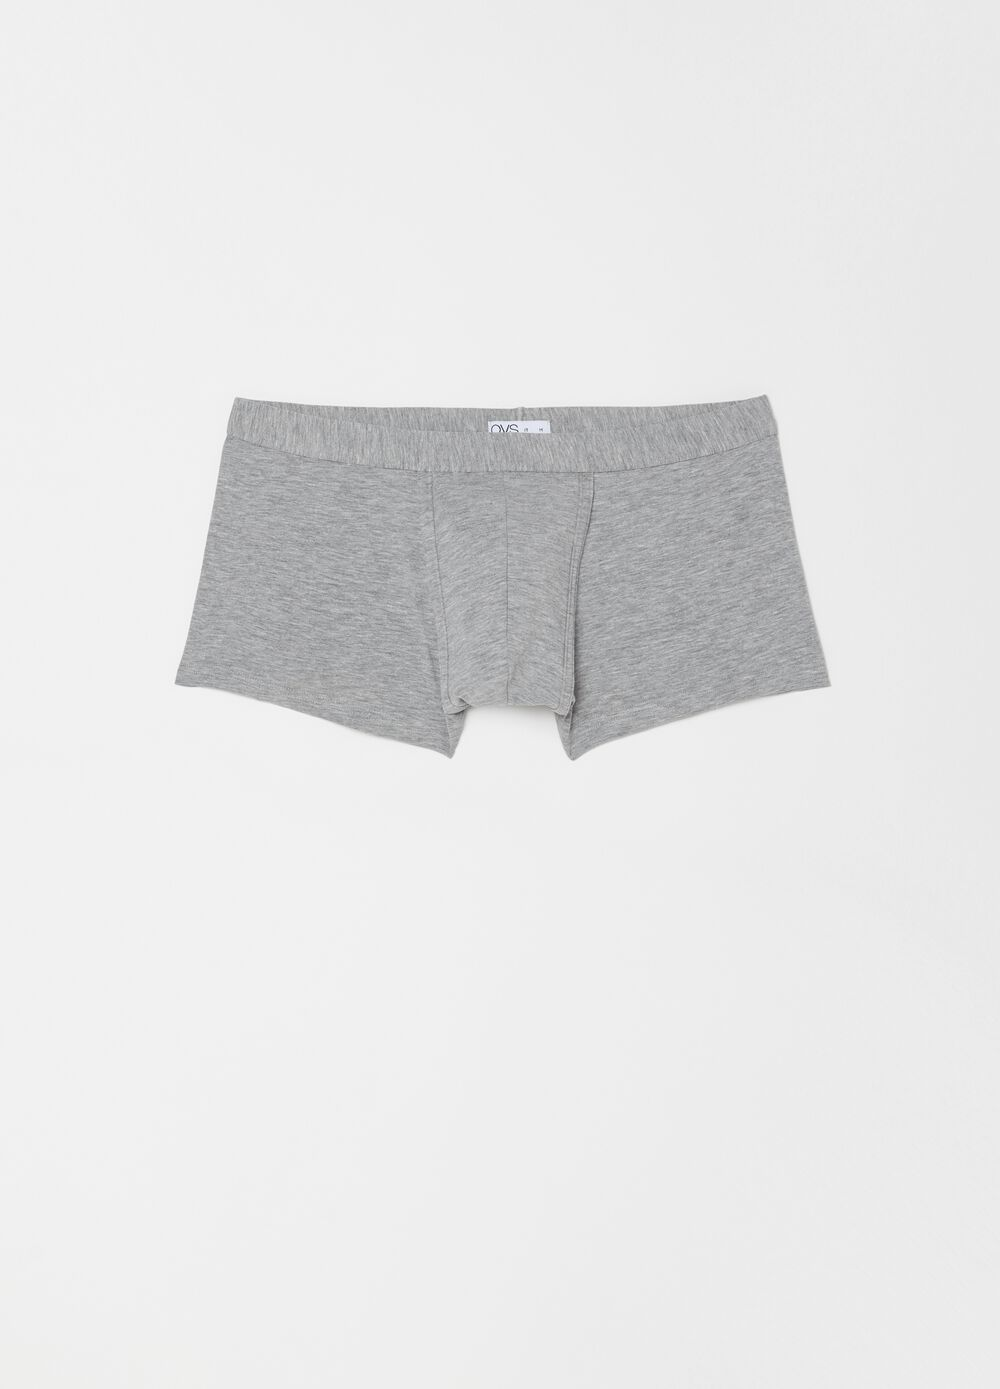 Two-pack cotton blend boxers with elastic waistband